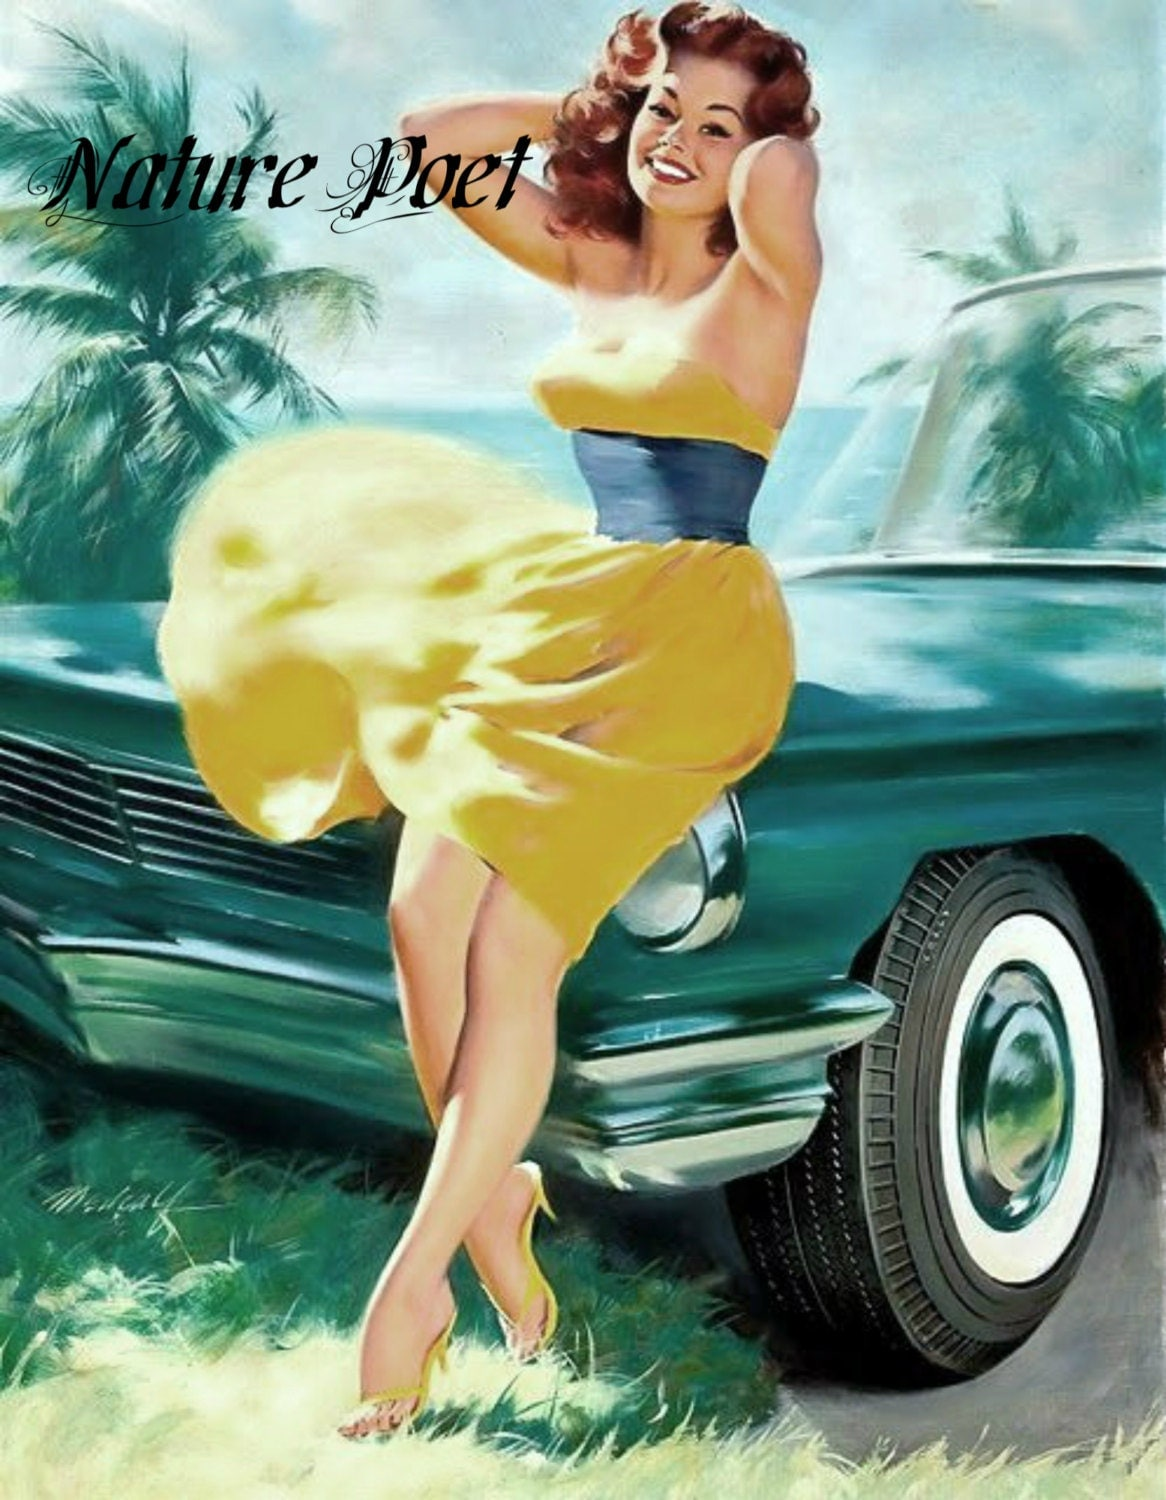 1950s pin up girl and car reproduction art by naturepoet on etsy. Black Bedroom Furniture Sets. Home Design Ideas